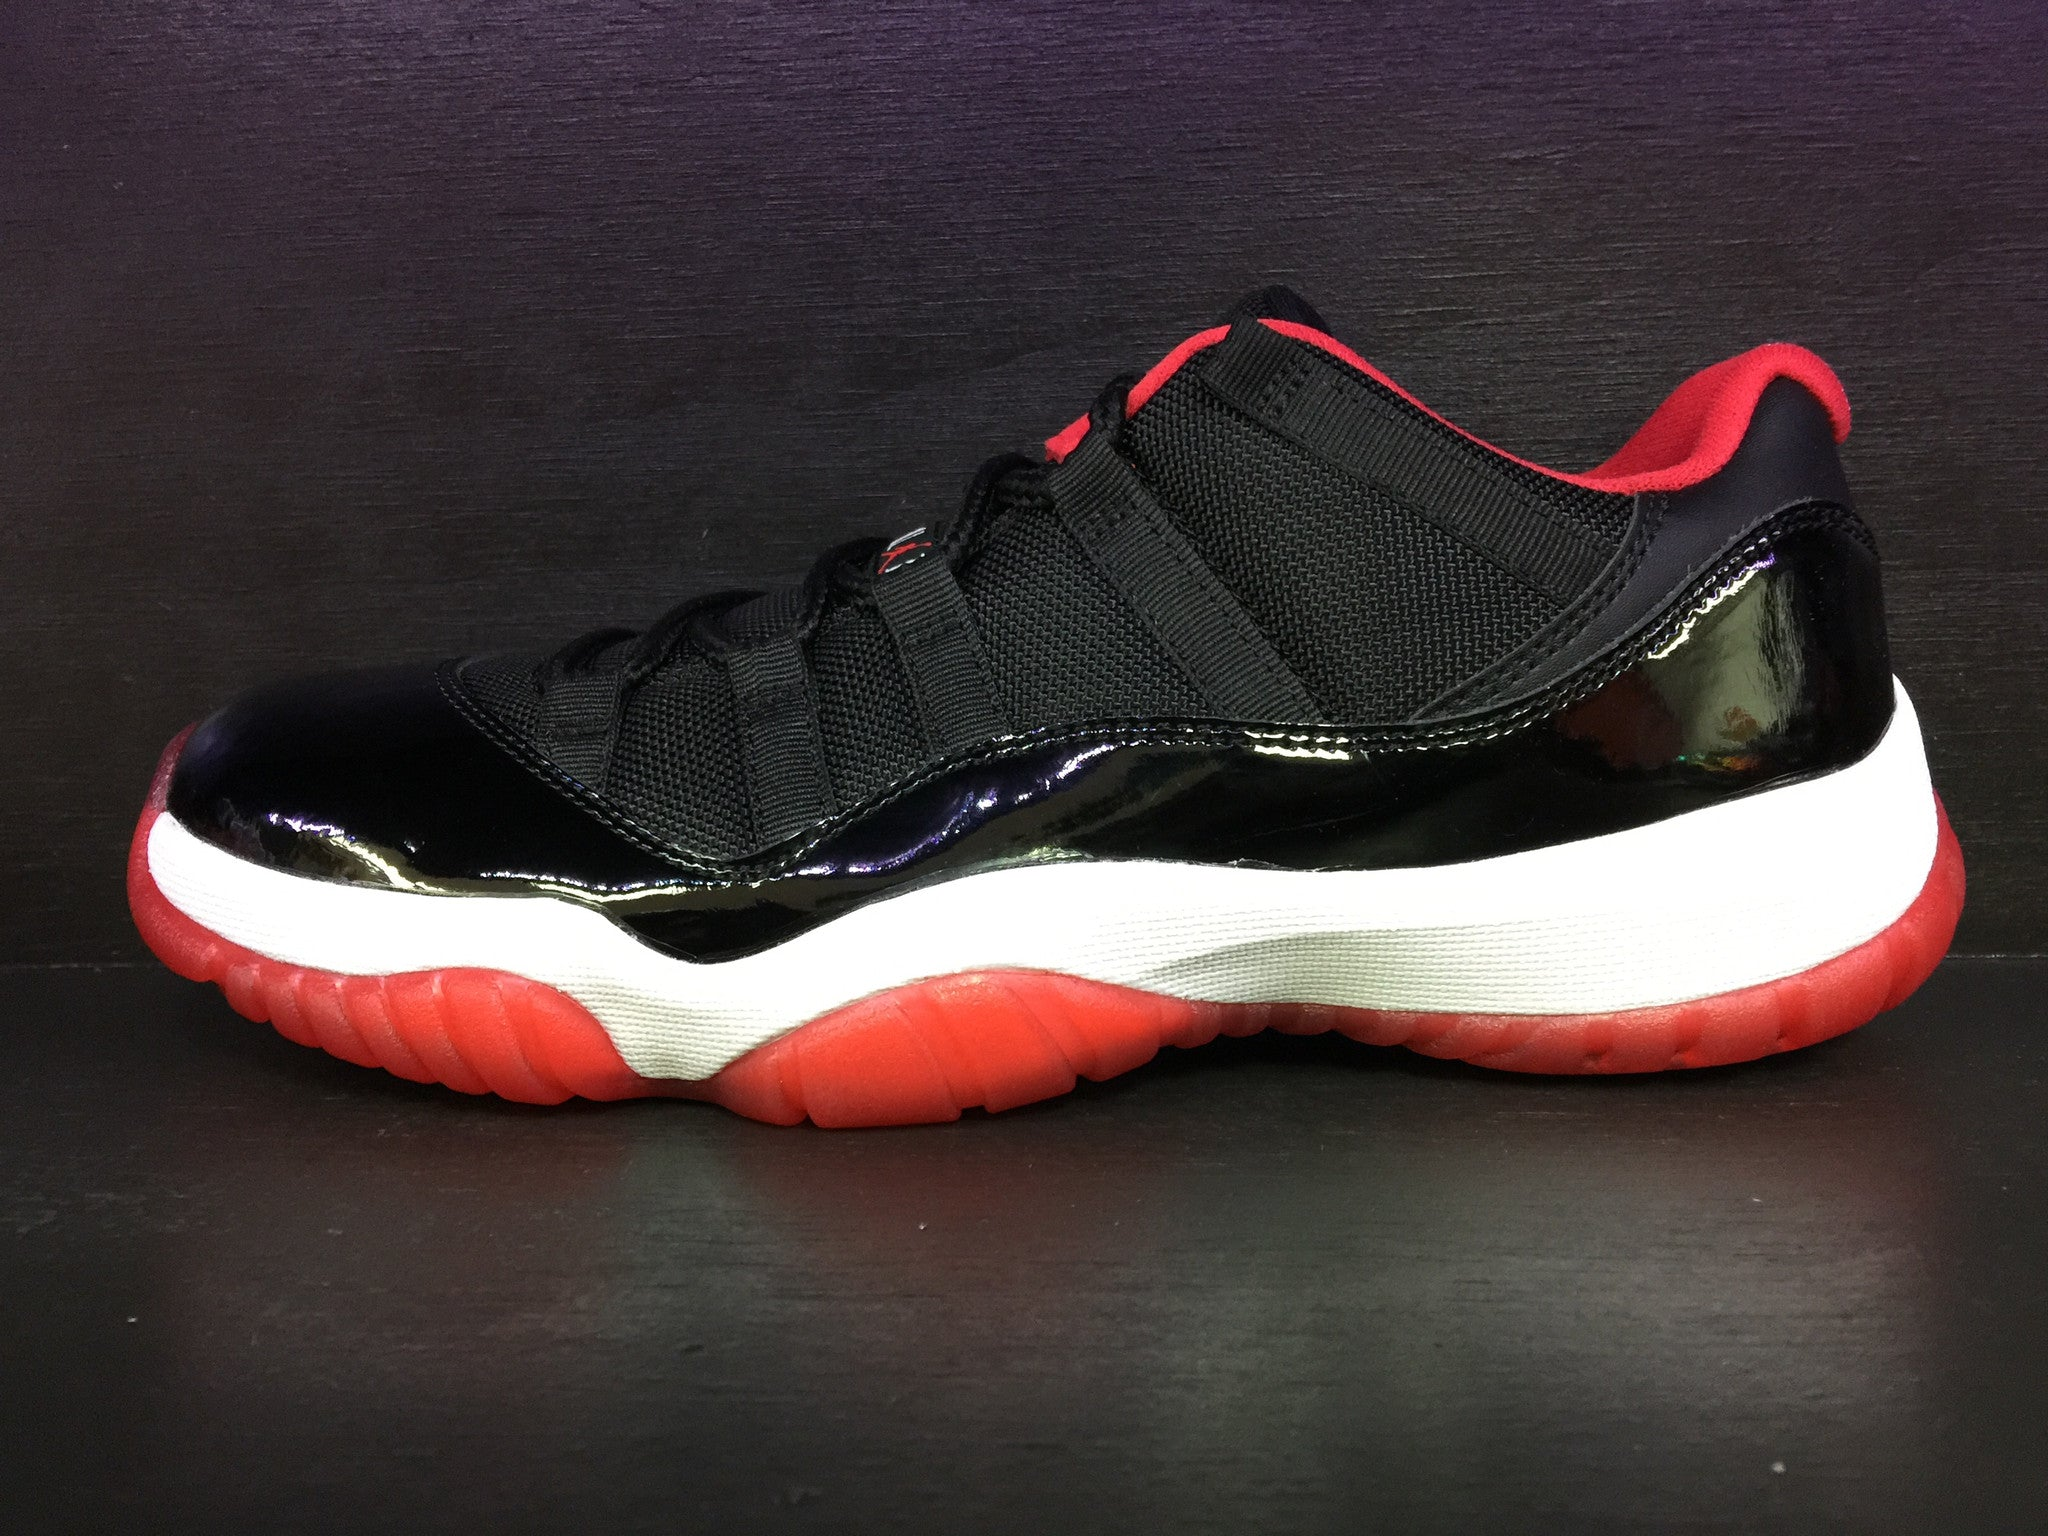 Air Jordan 11 Retro Low 'Bred'